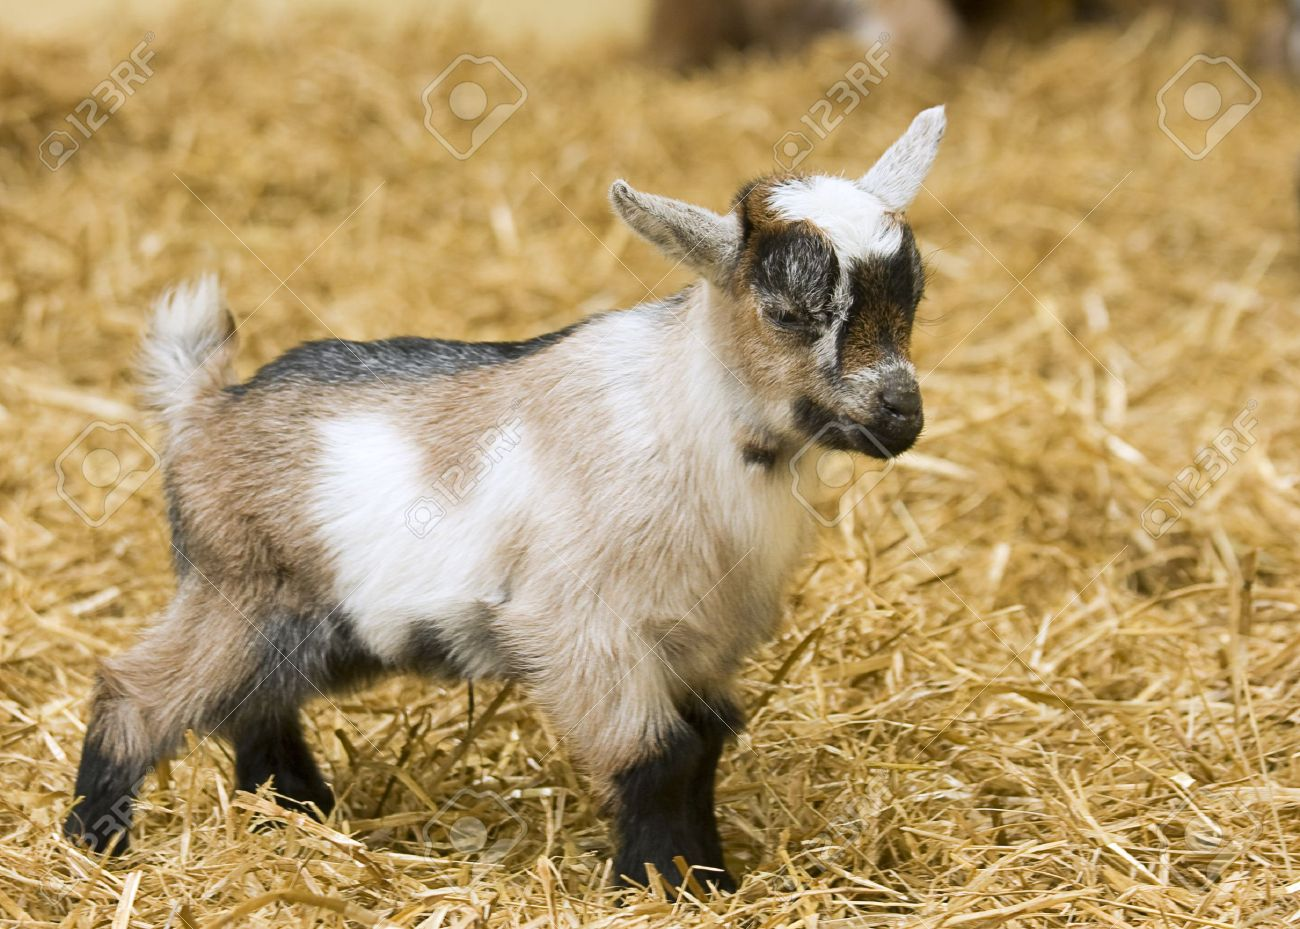 A baby goat standing on staw bedding in an indoor animal pen Stock Photo - 7644559